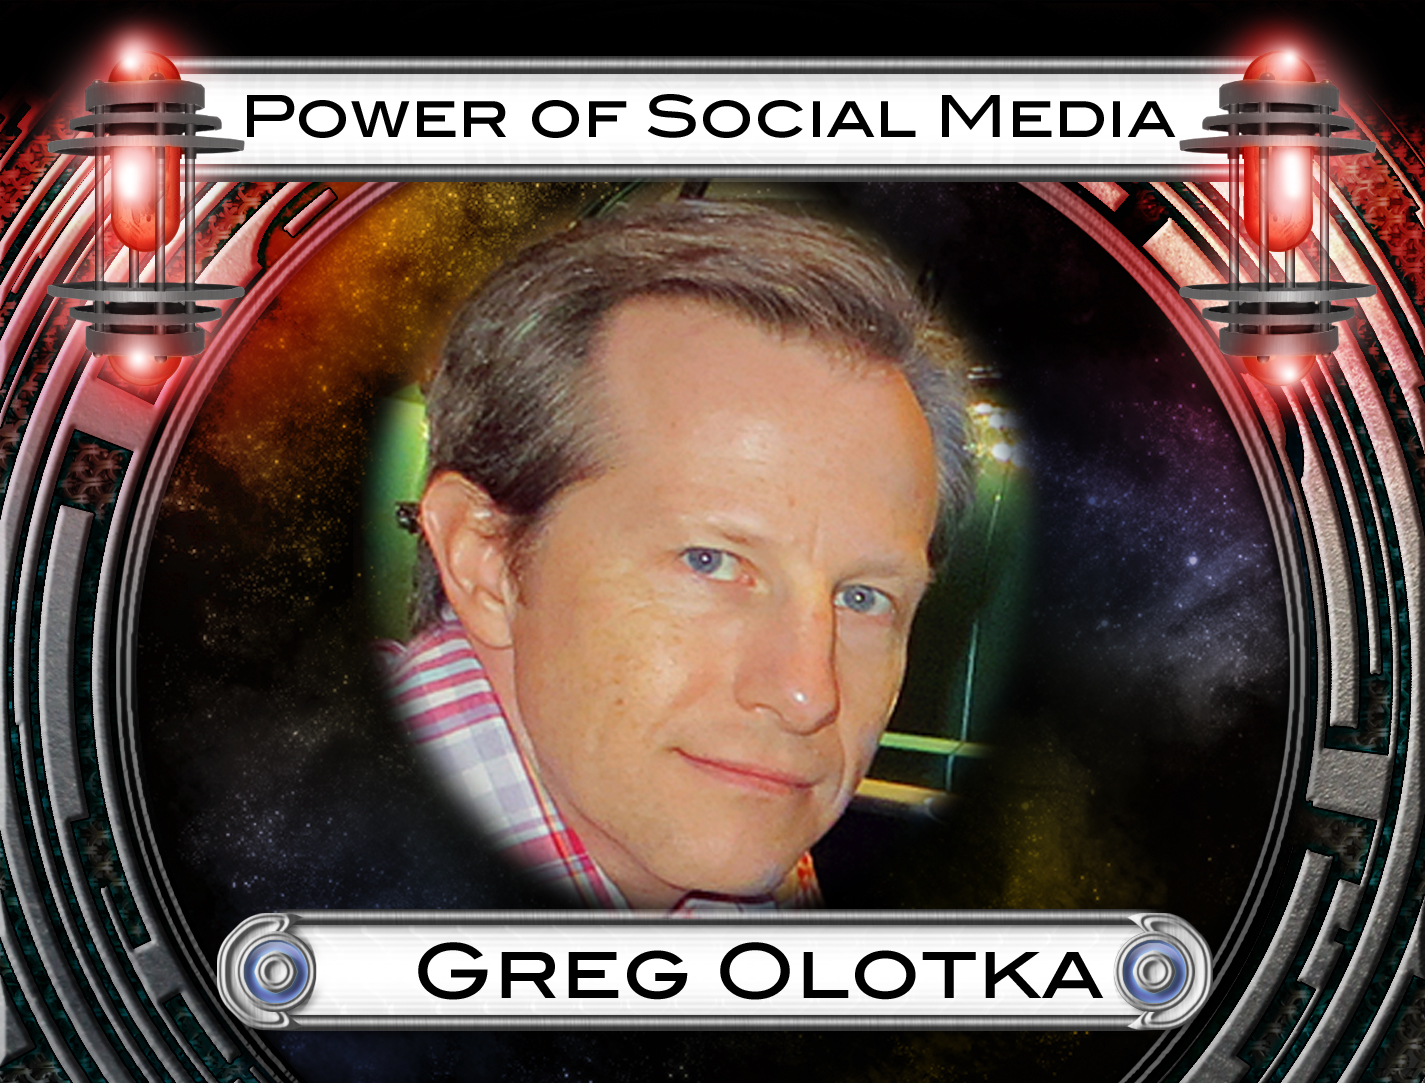 greg olotka power card.jpg